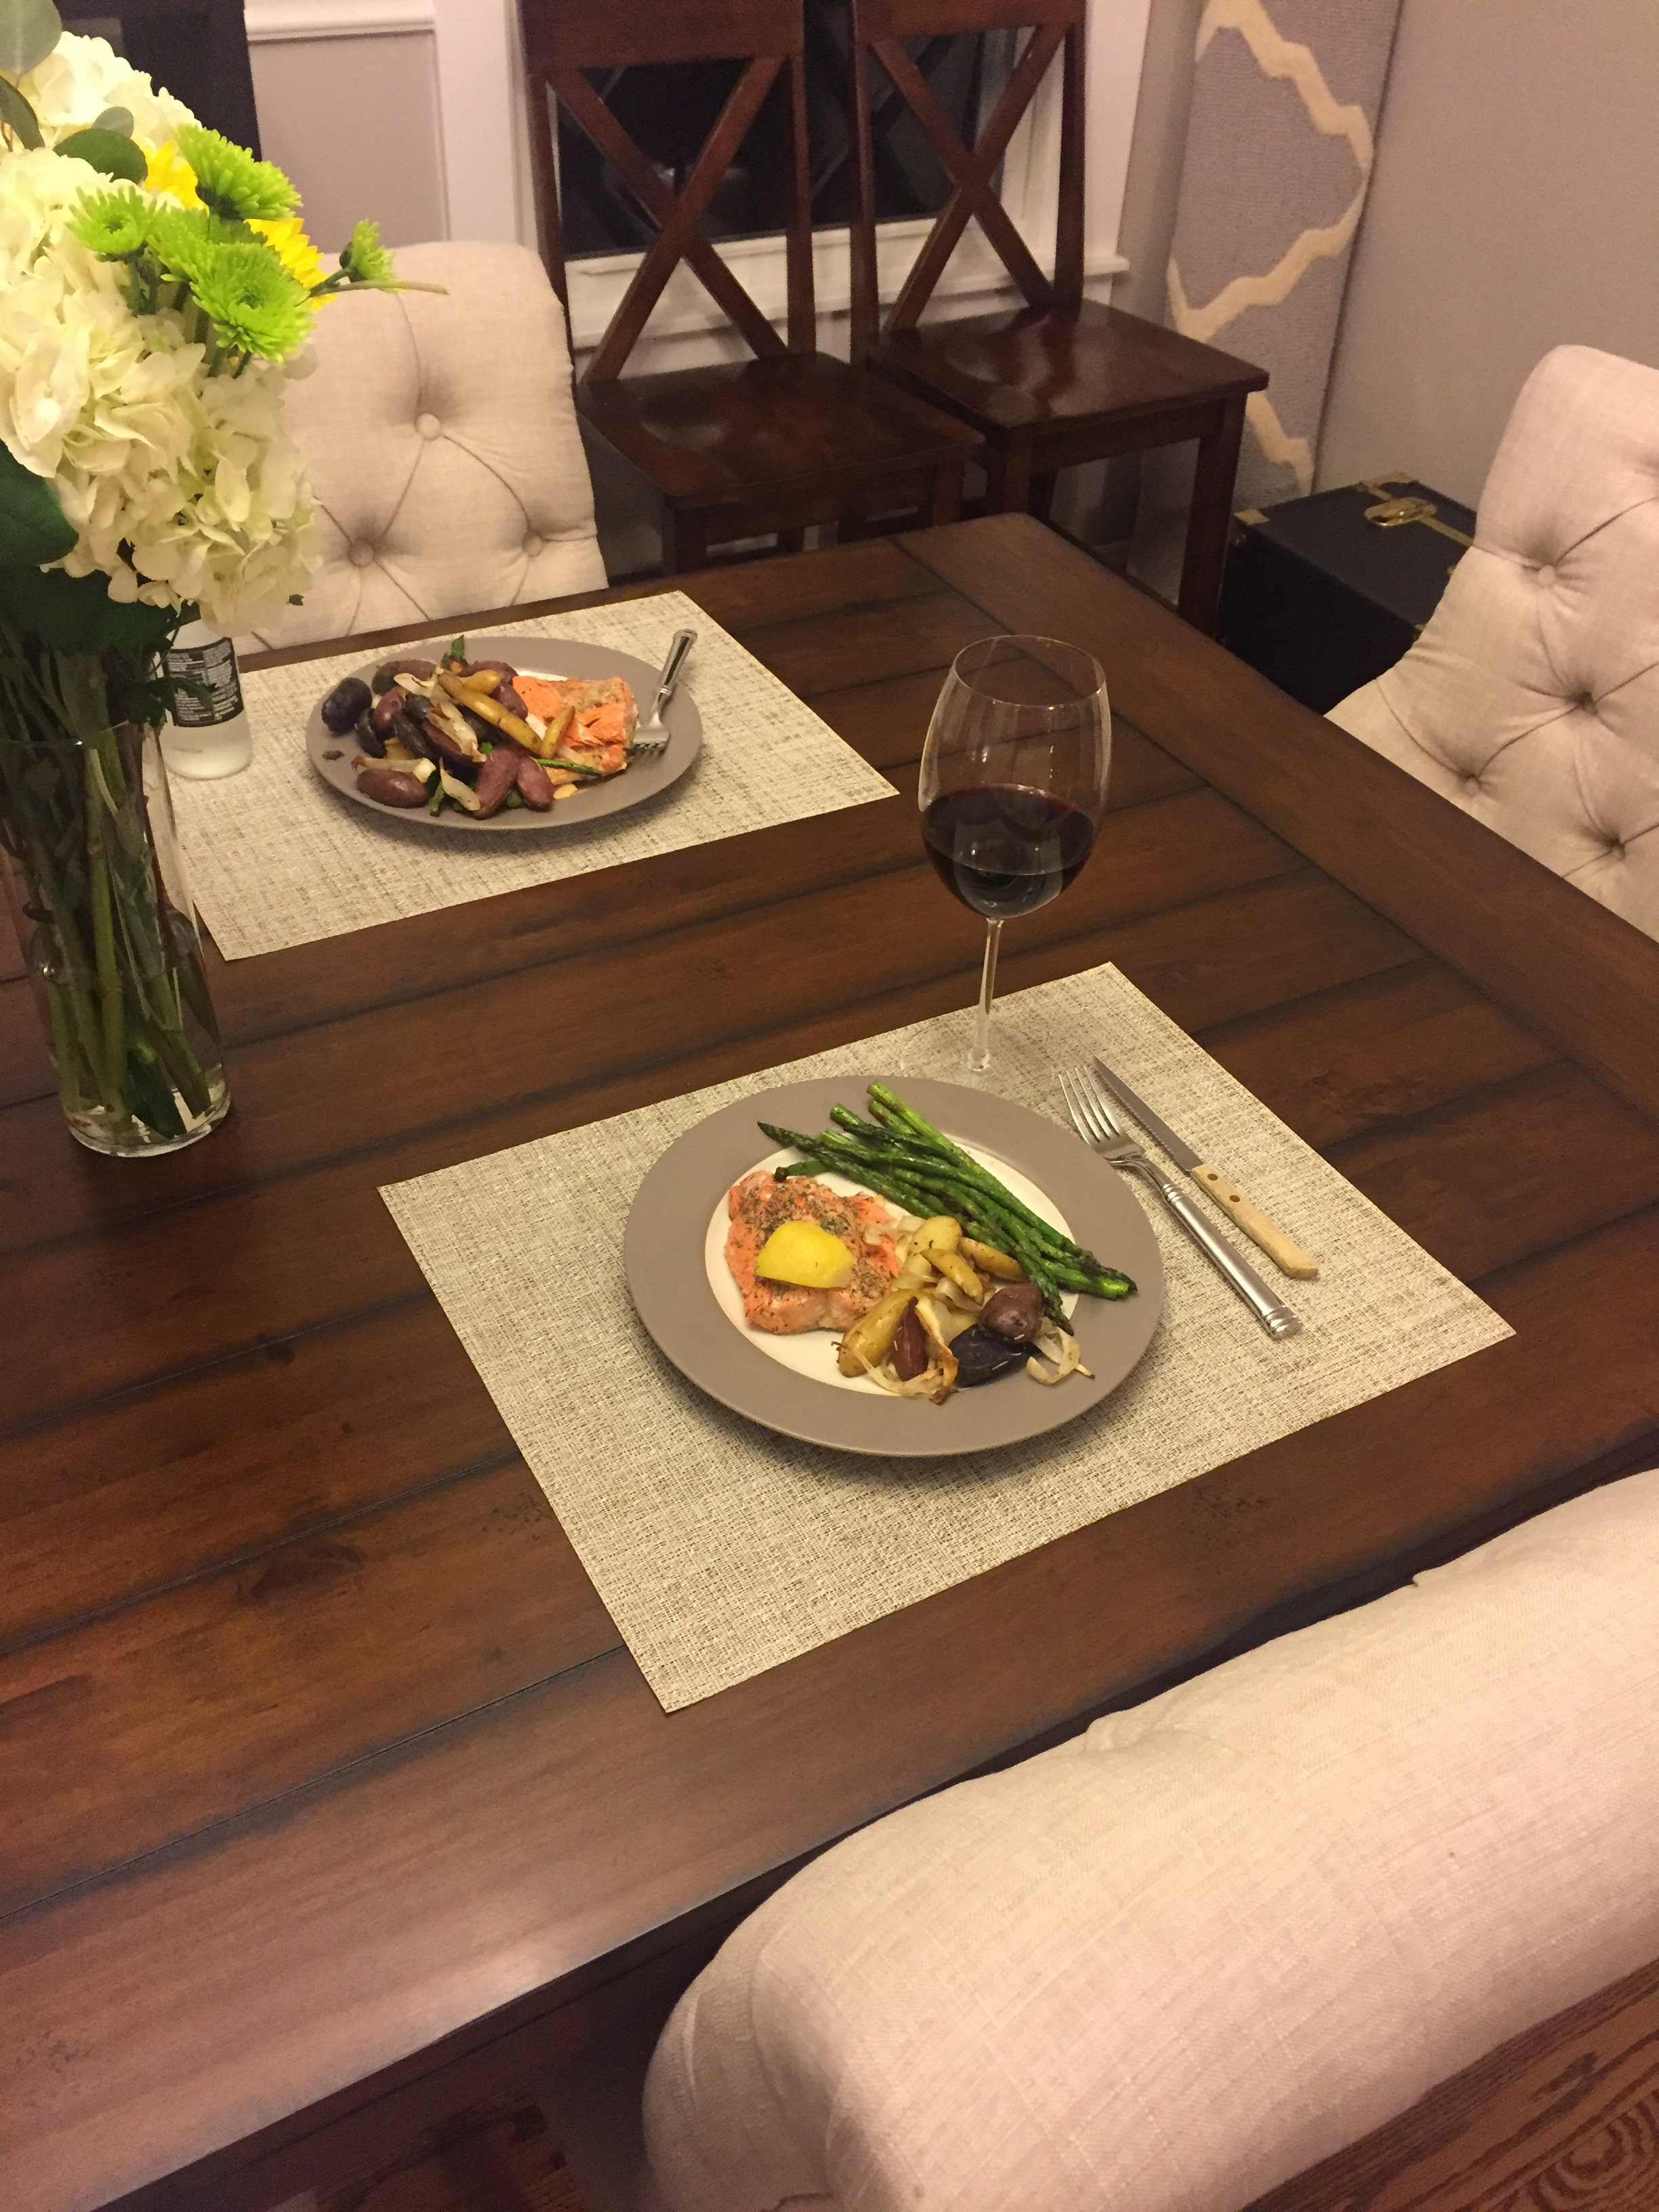 Our first dinner on a REAL table